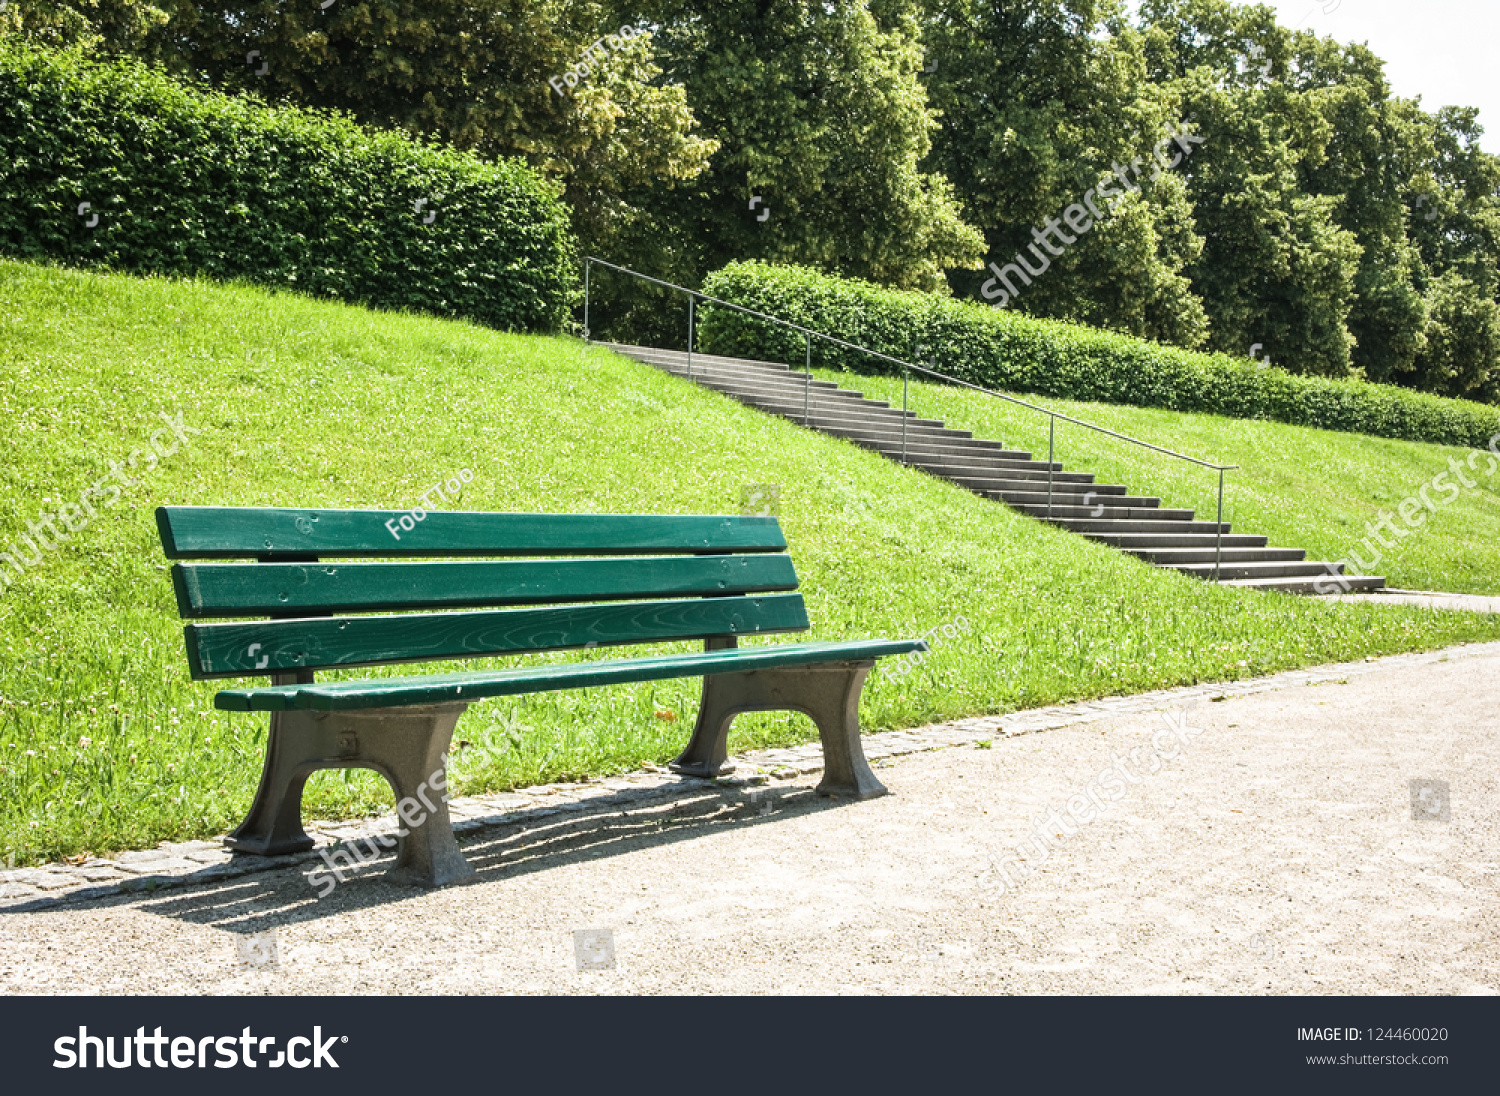 Wooden Park Bench At A Park Stock Photo 124460020 : Shutterstock